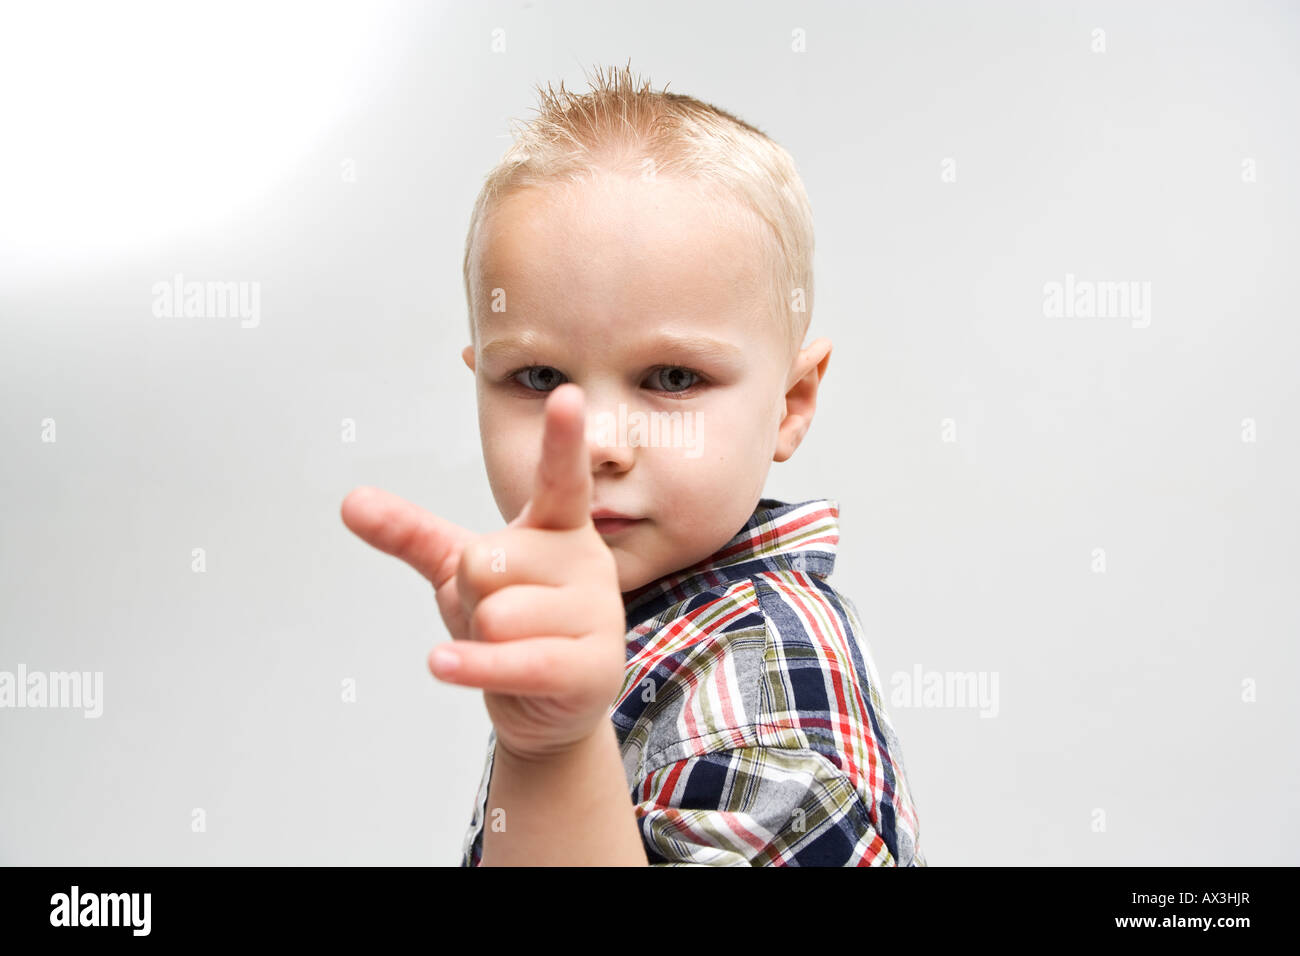 Luka pointing finger at viewer - Stock Image